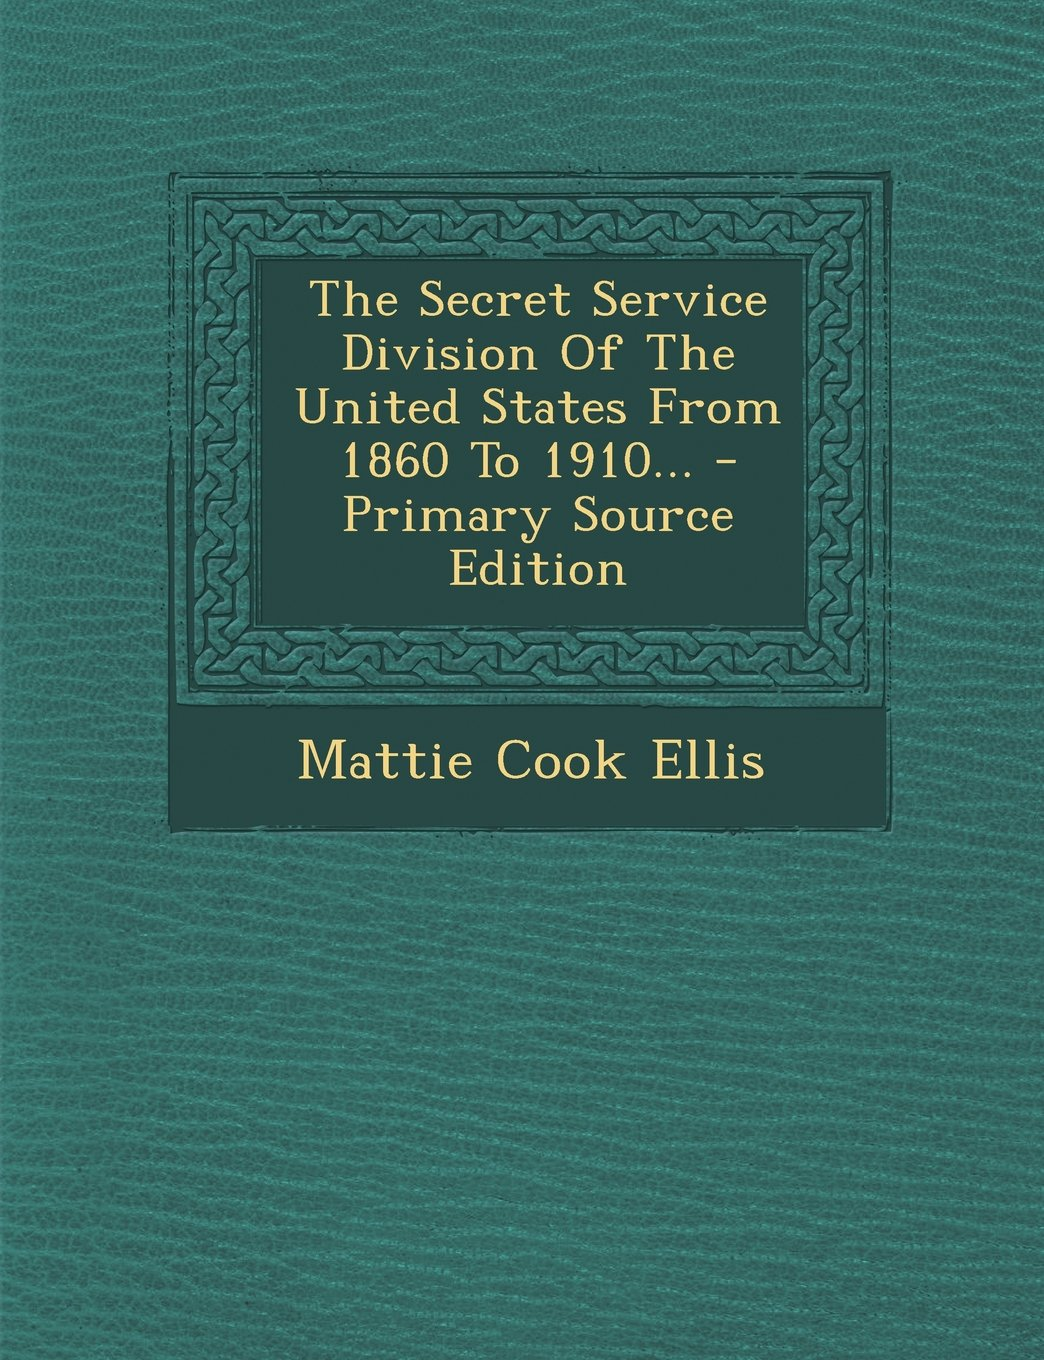 The Secret Service Division of the United States from 1860 to 1910 ...